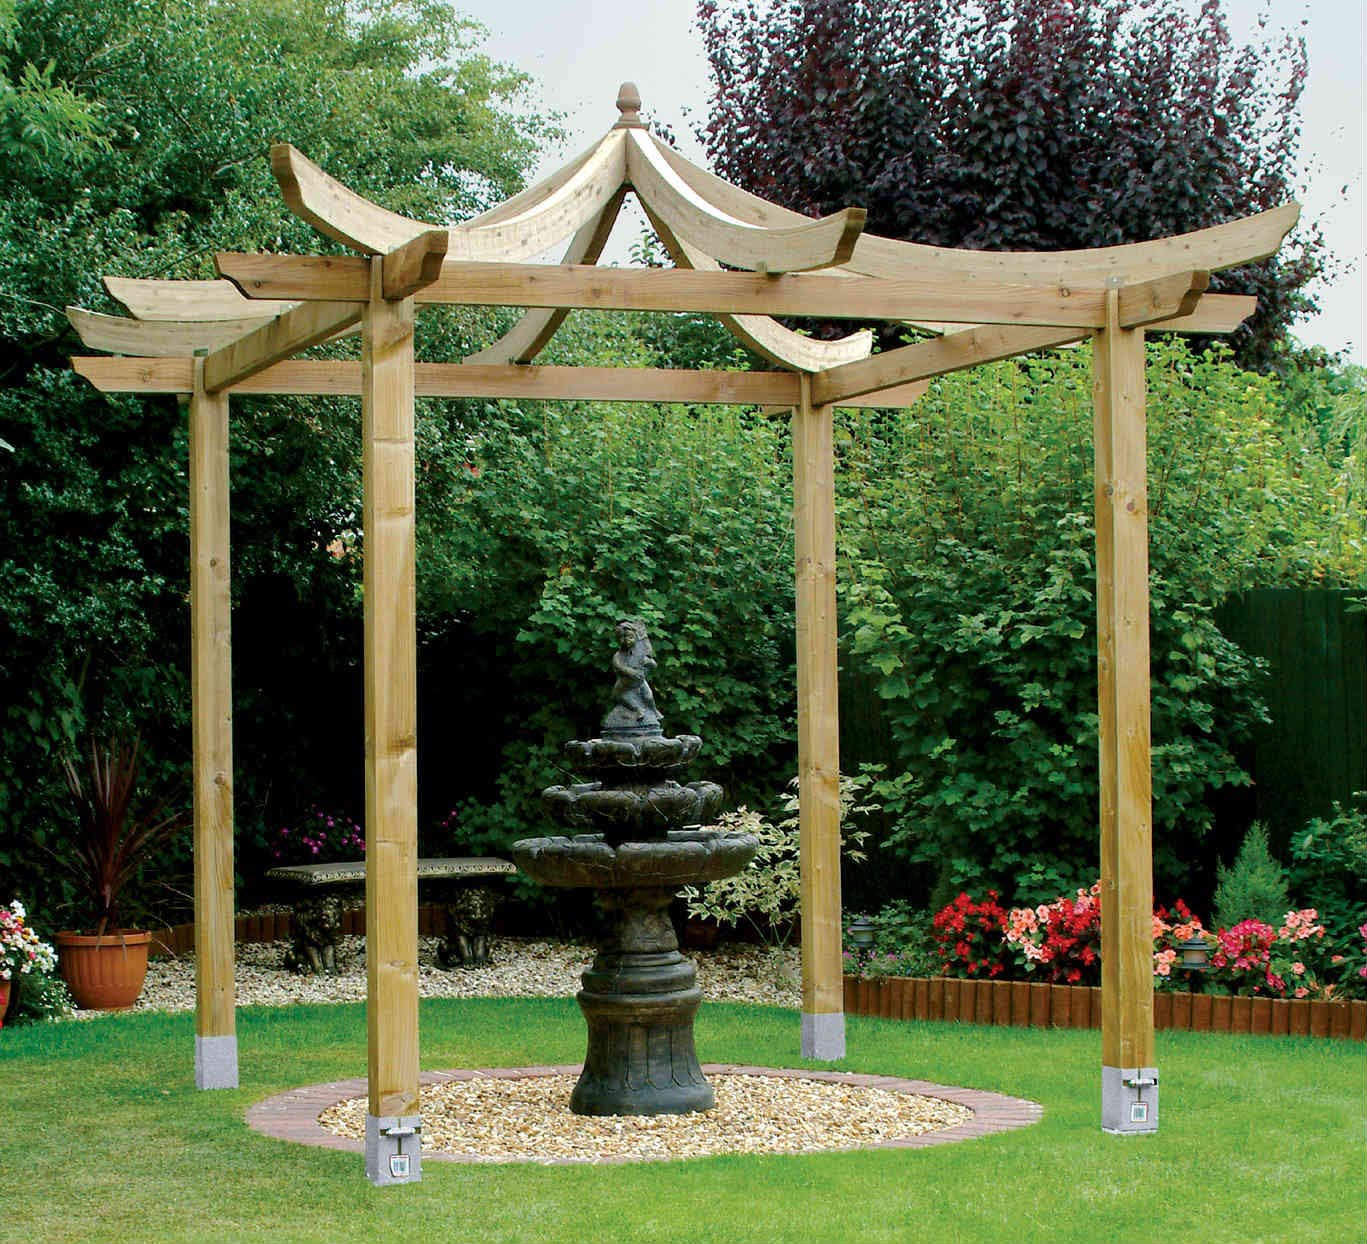 Plans for Wooden Gazebo